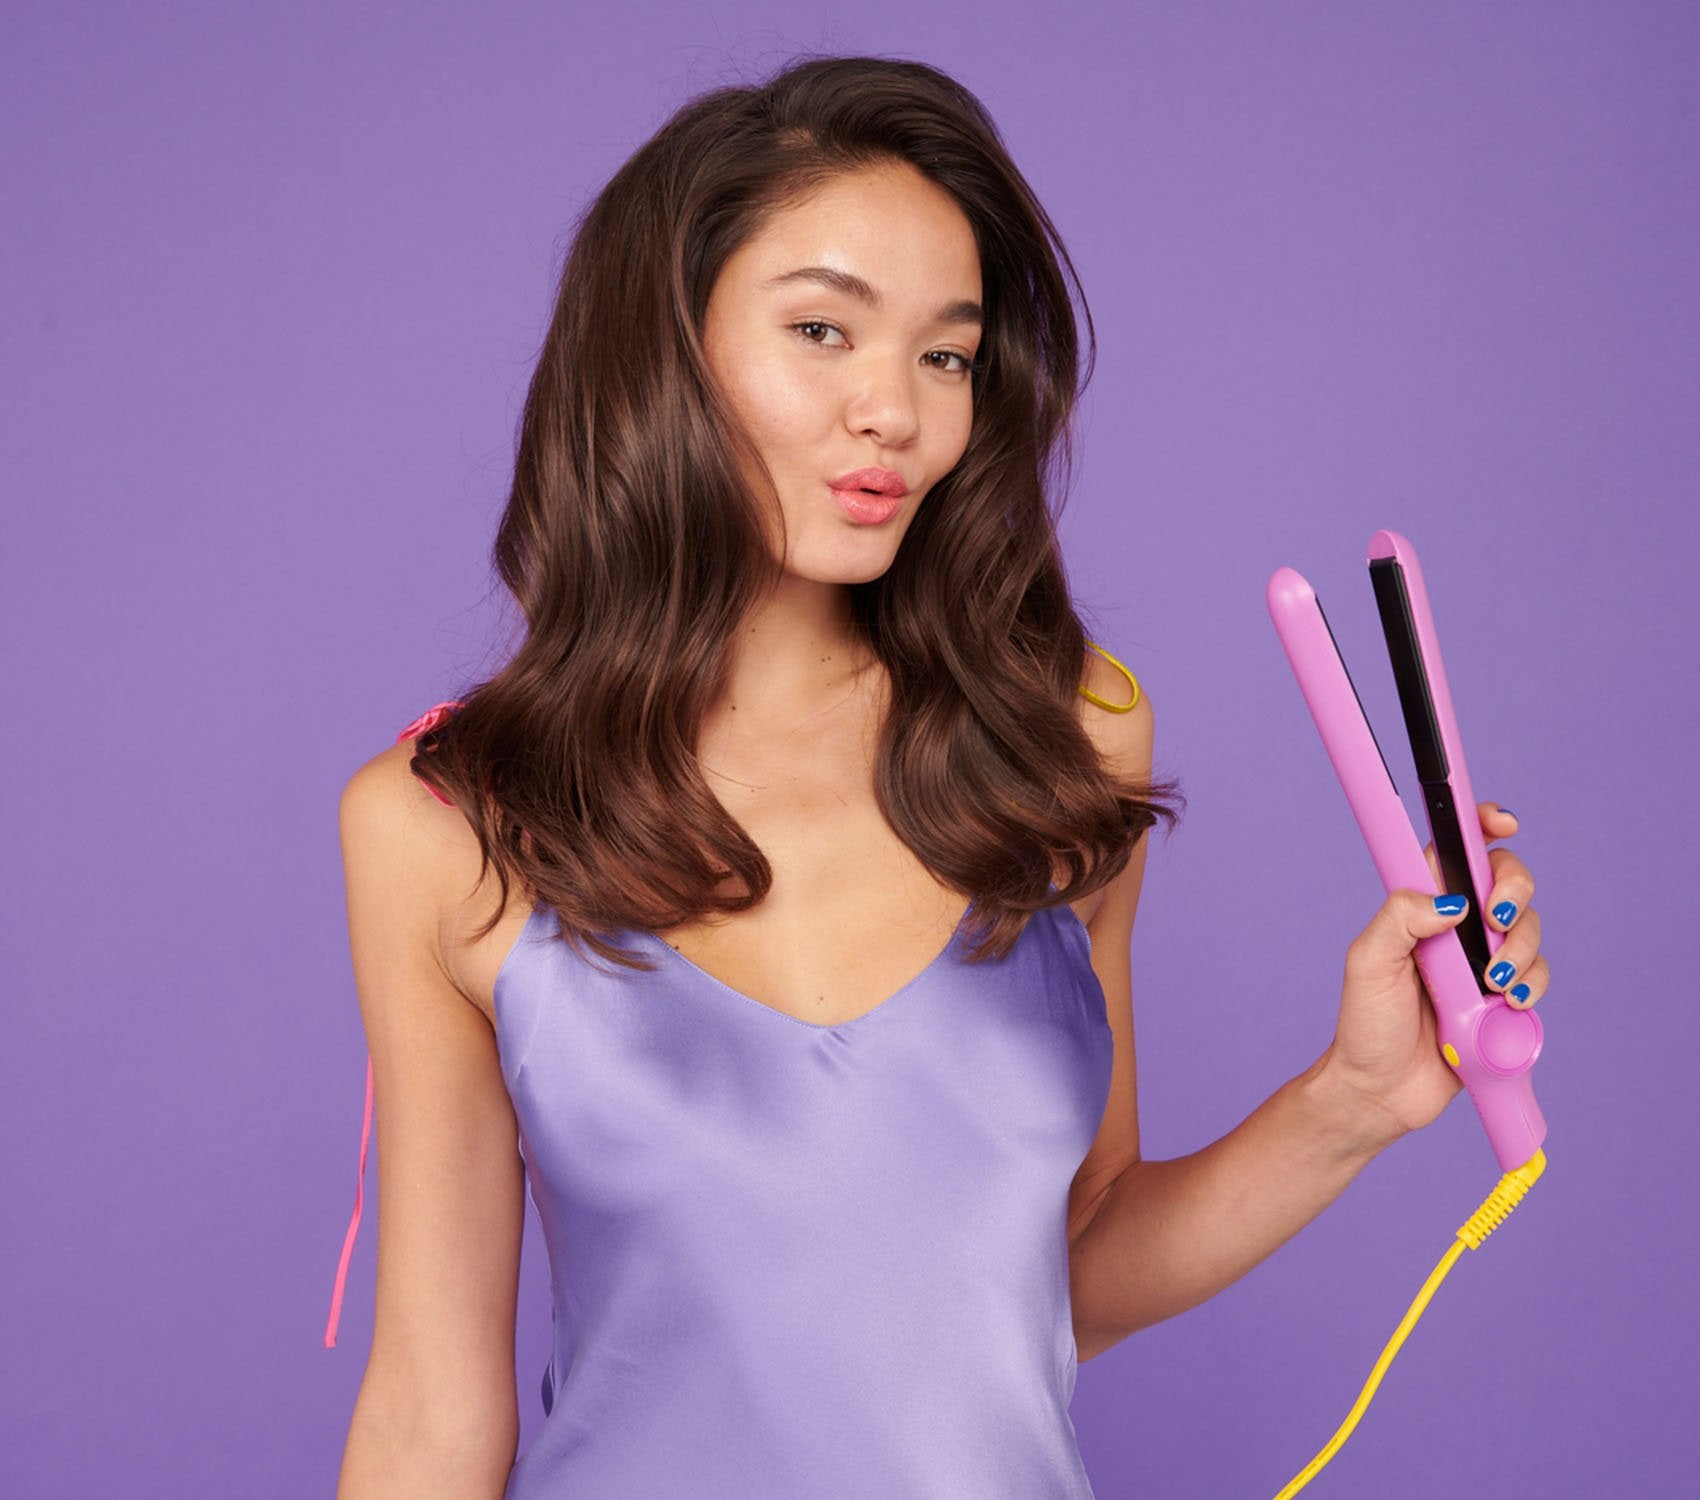 Woman holding out the Styling Iron to her side